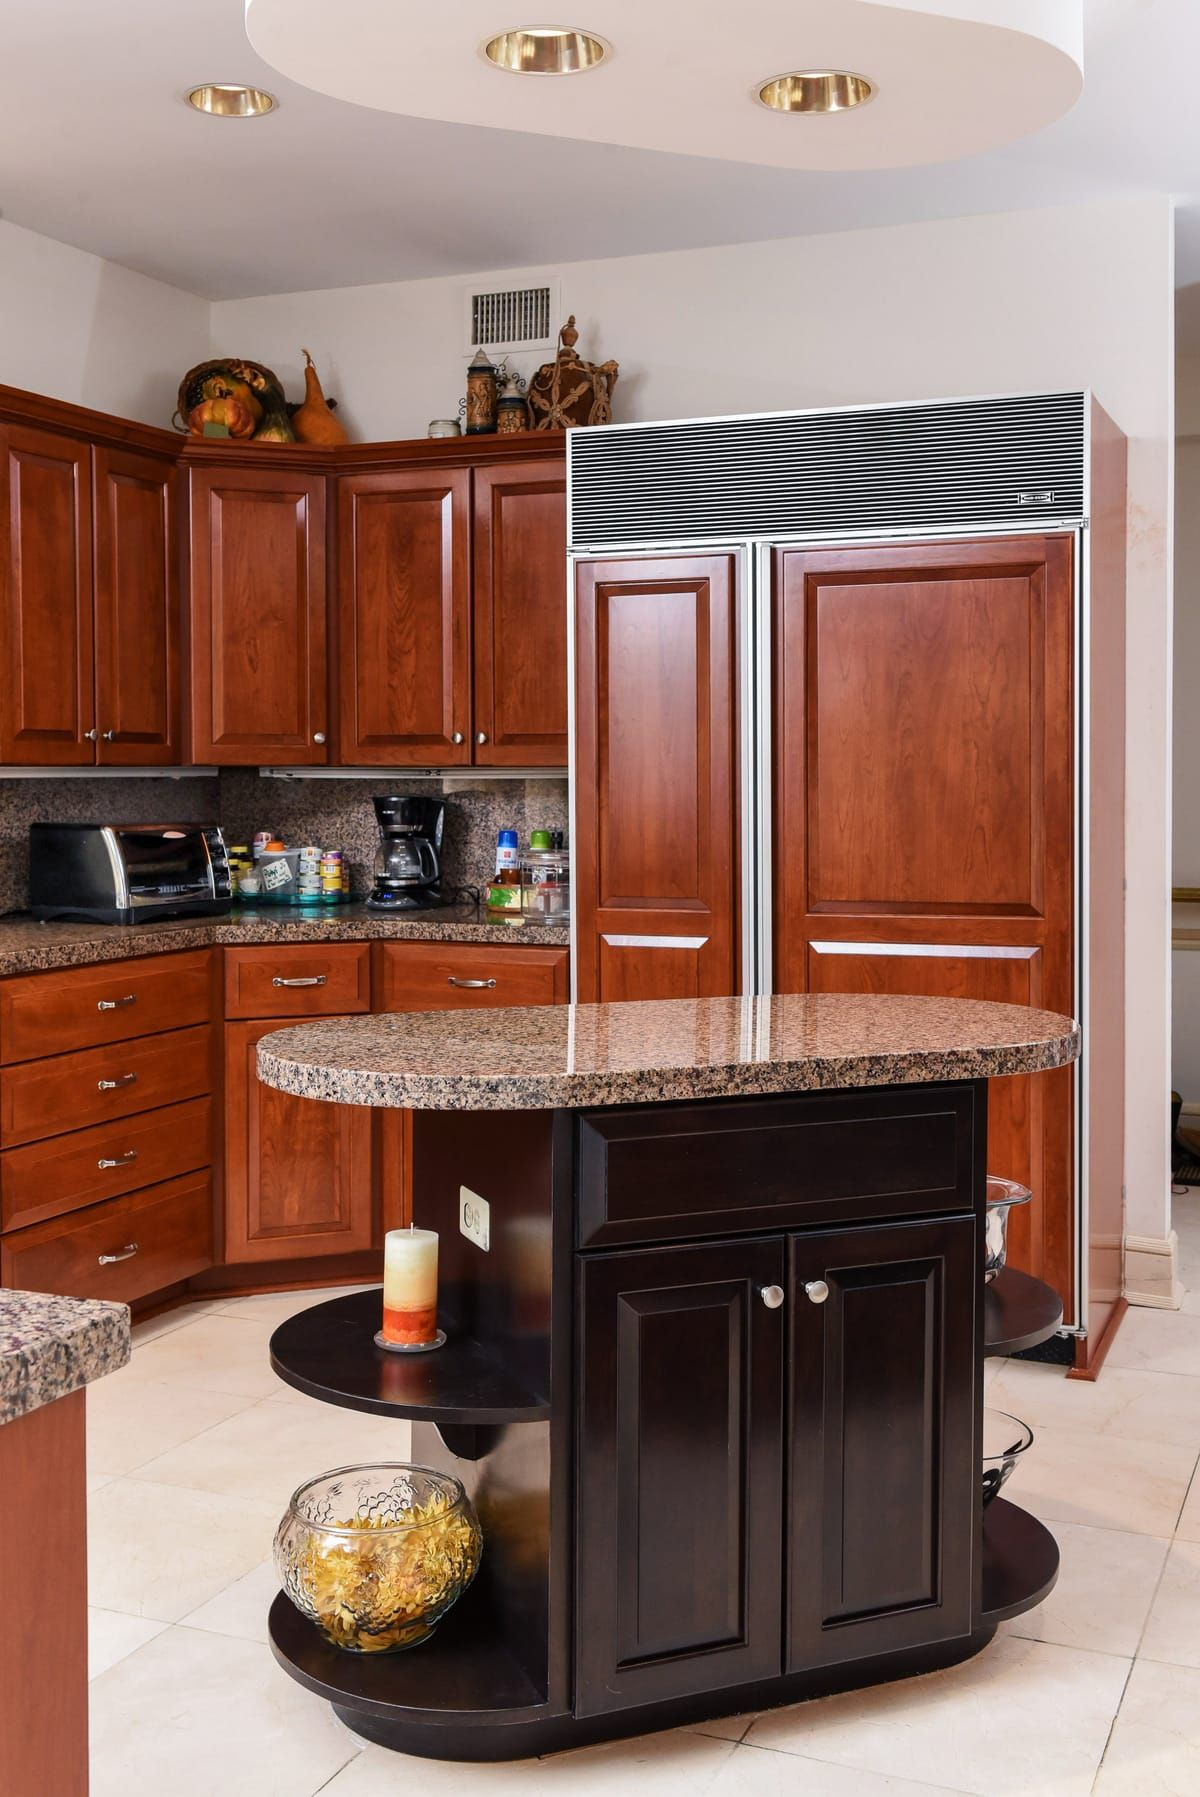 How Do You Get A Traditional Look With Modern Appliances With Furniture Panels Cherry Wood Panels That Kitchen Remodel Modern Appliances Traditional Kitchen